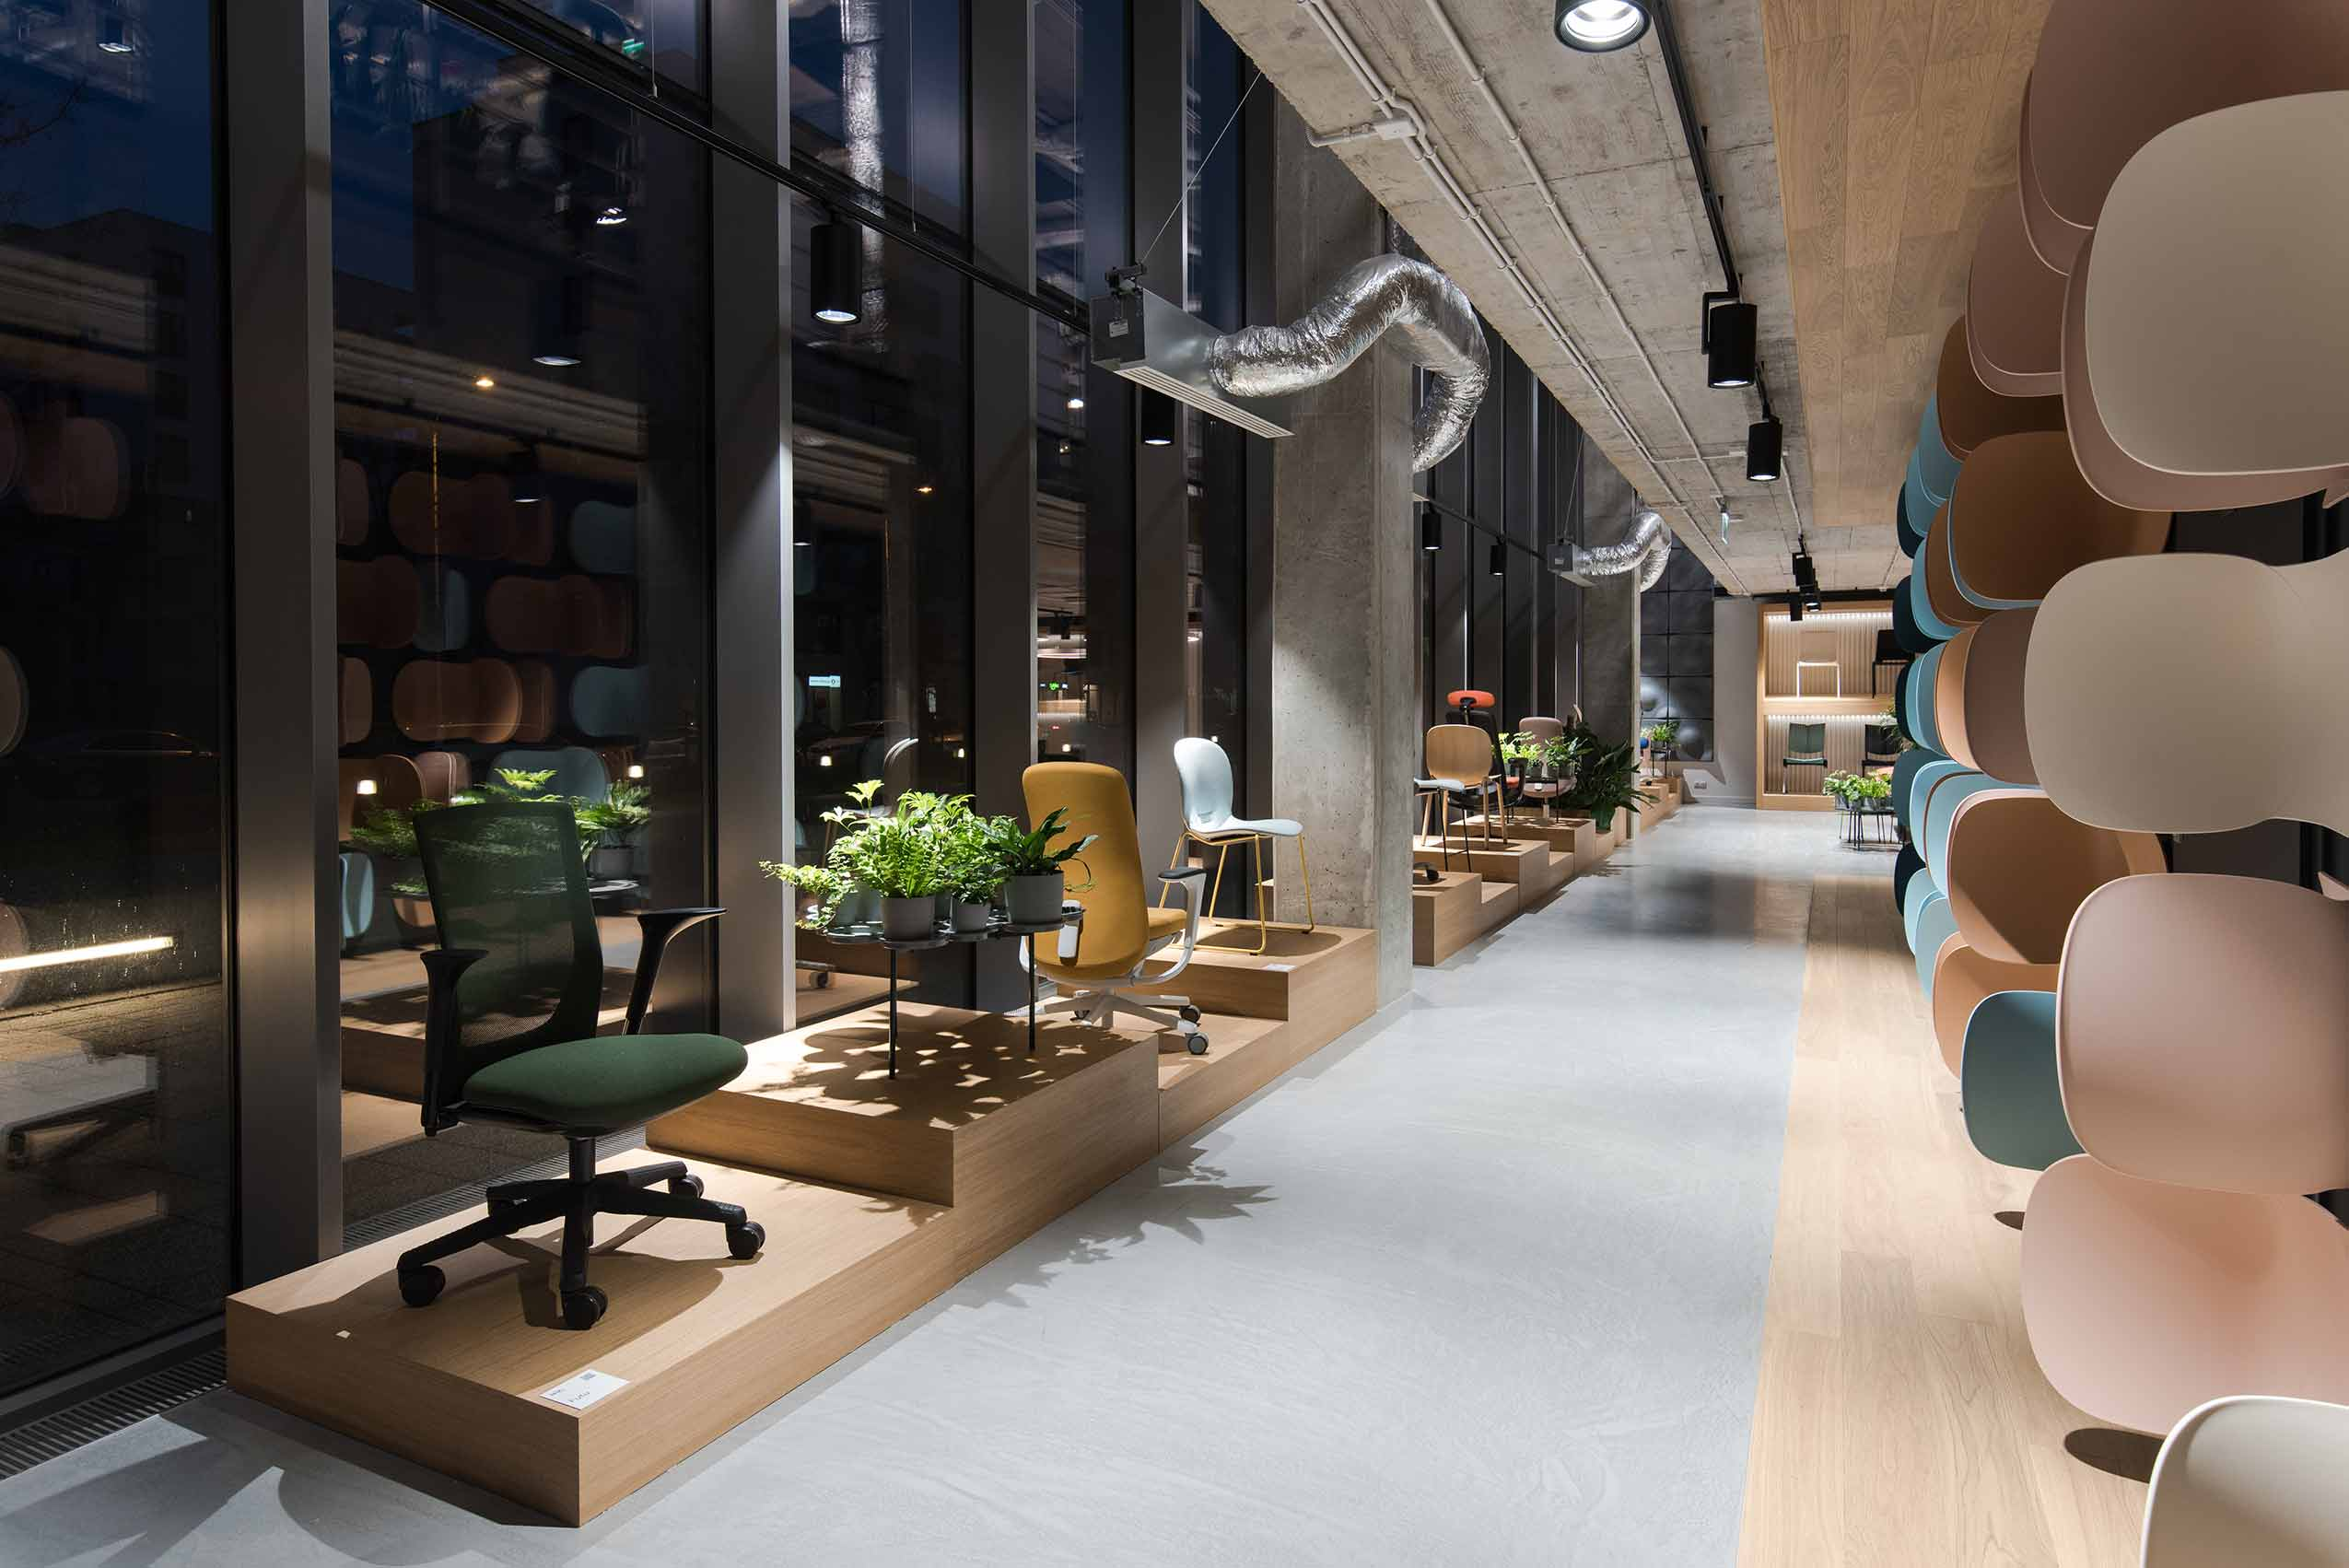 Flokk showroom in Poland with chairs on plinths in low light